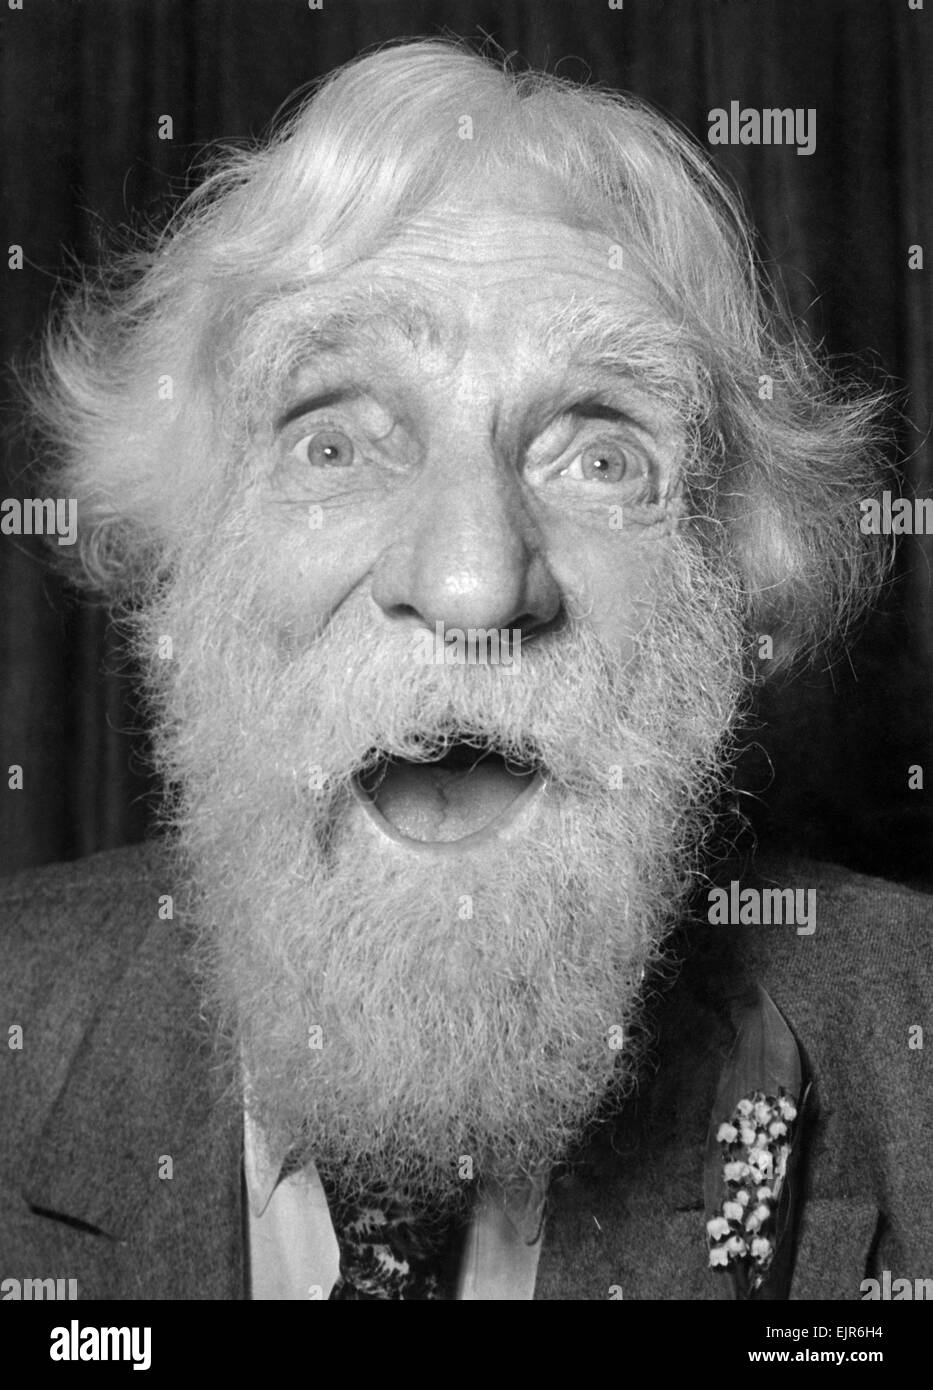 Old man with eyes wide open, looking into camera 25th May 1950. *** Local Caption *** Pensioners OAP Senior Citizens - Stock Image